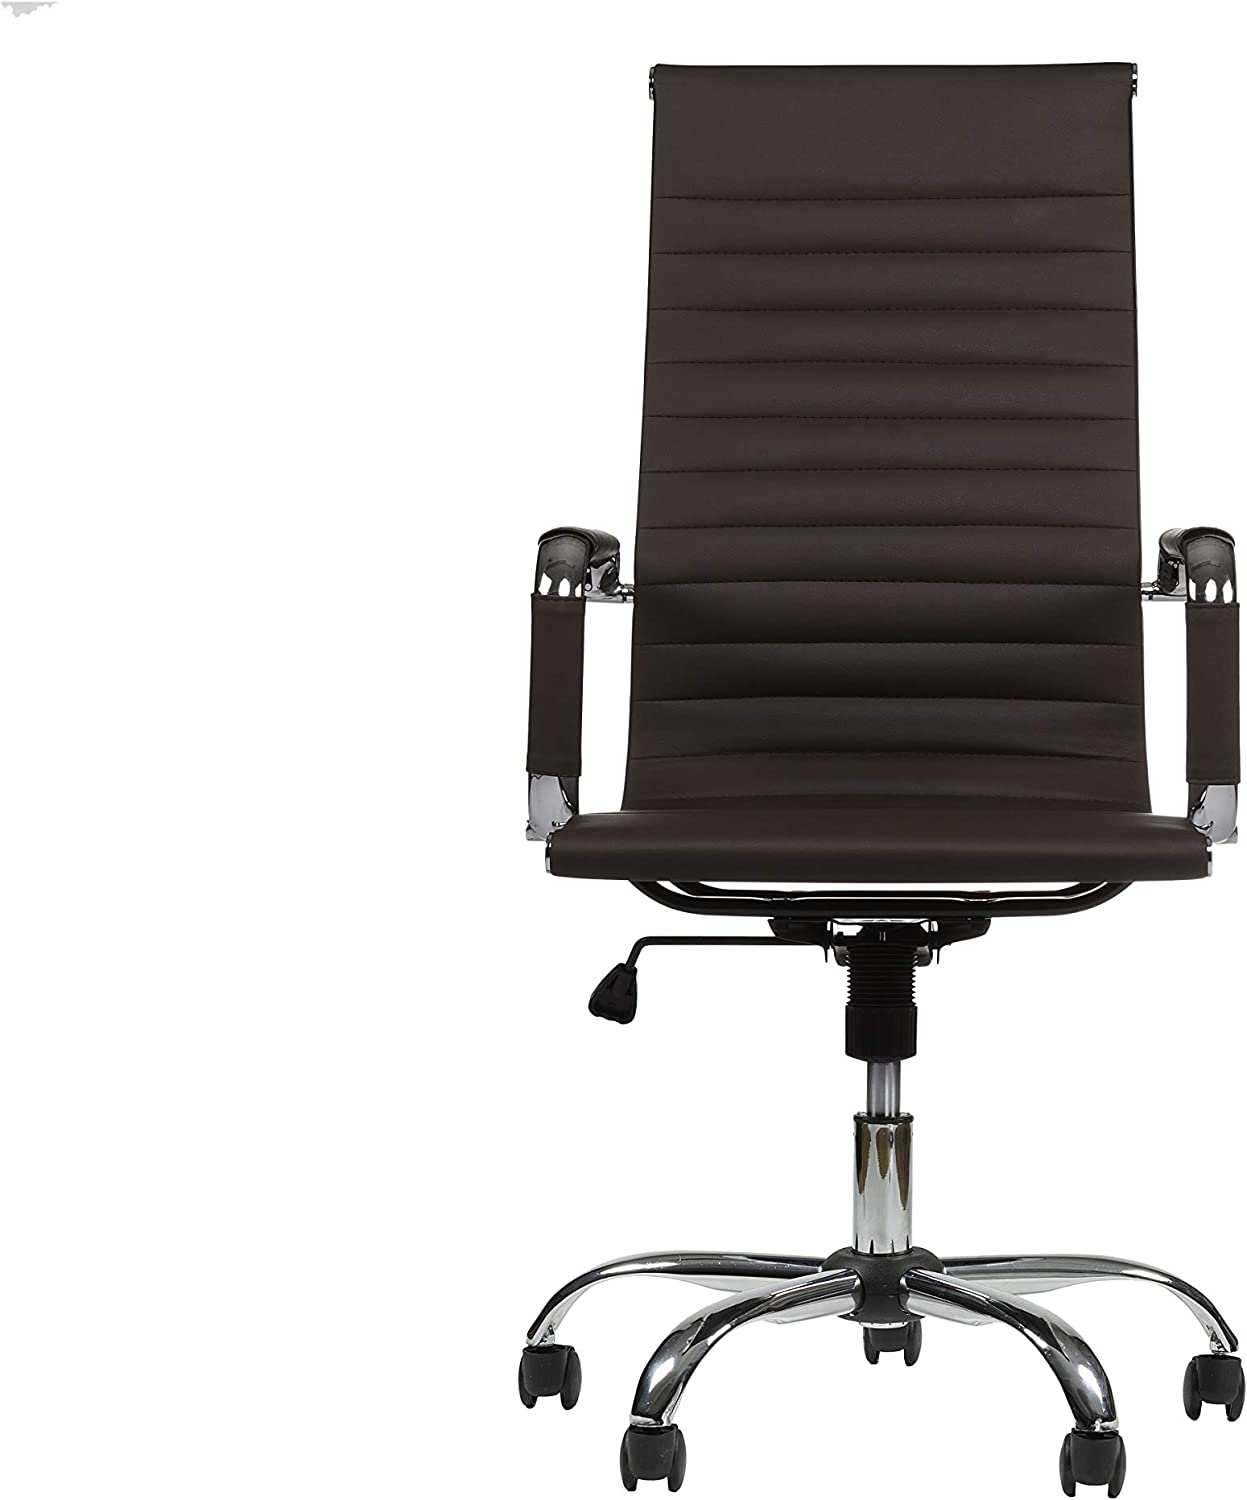 Winport Furniture W Office Chair, Brown